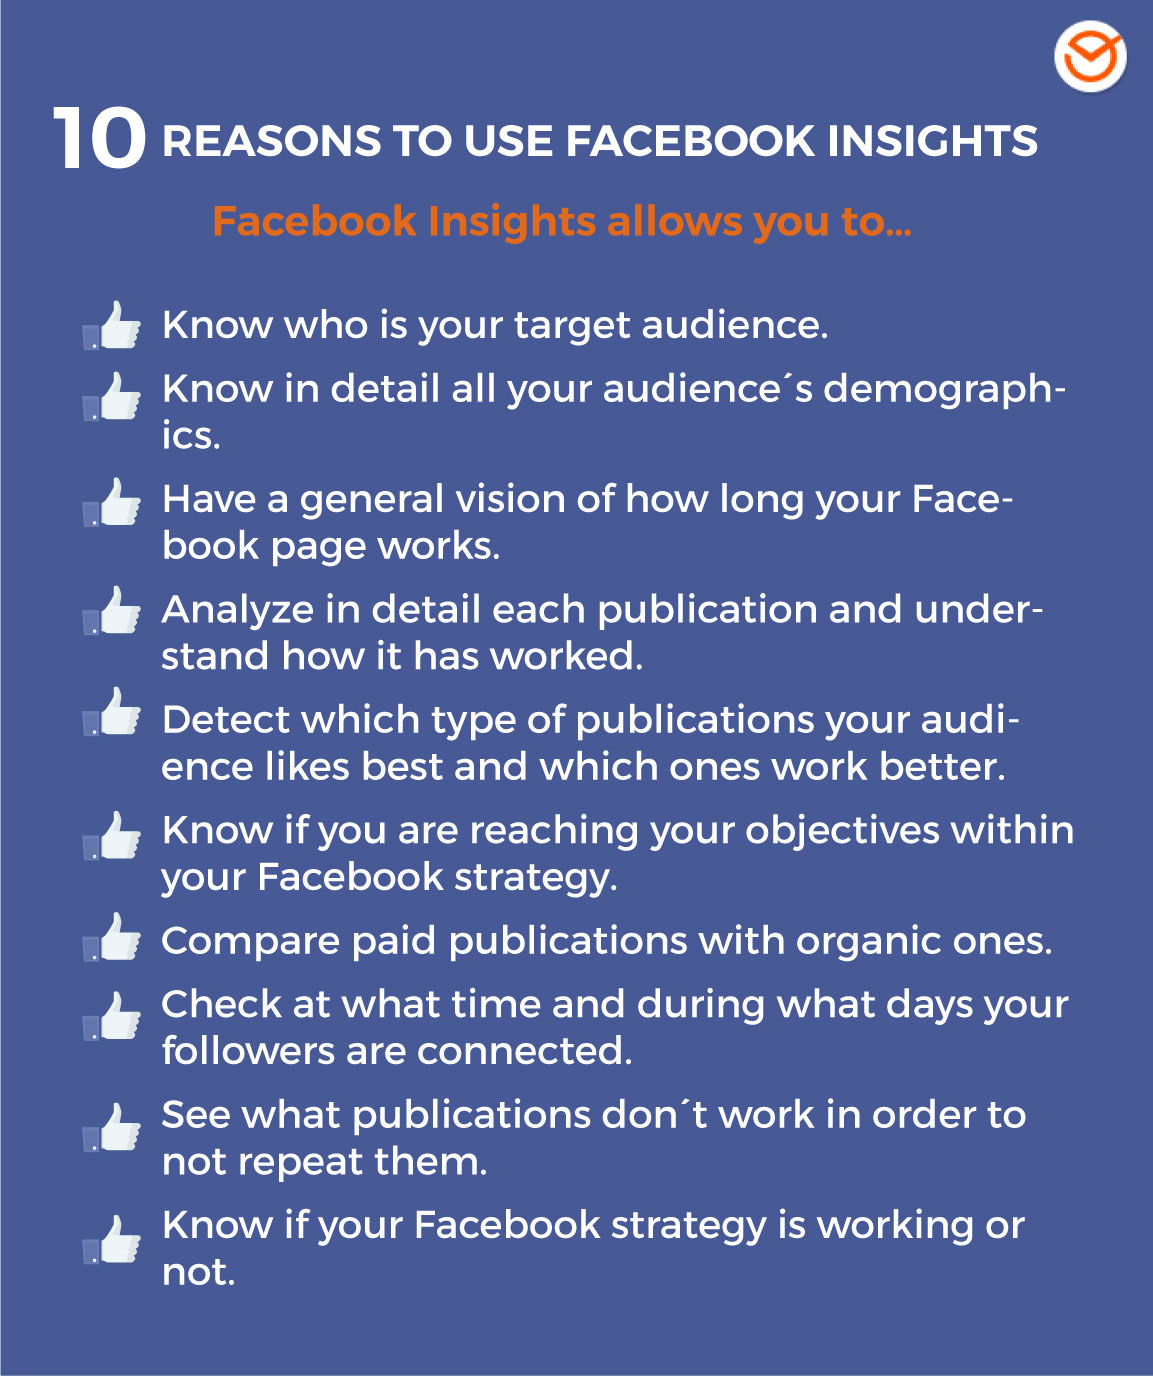 10-REASONS-TO-USE-FACEBOOK-INSIGHTS